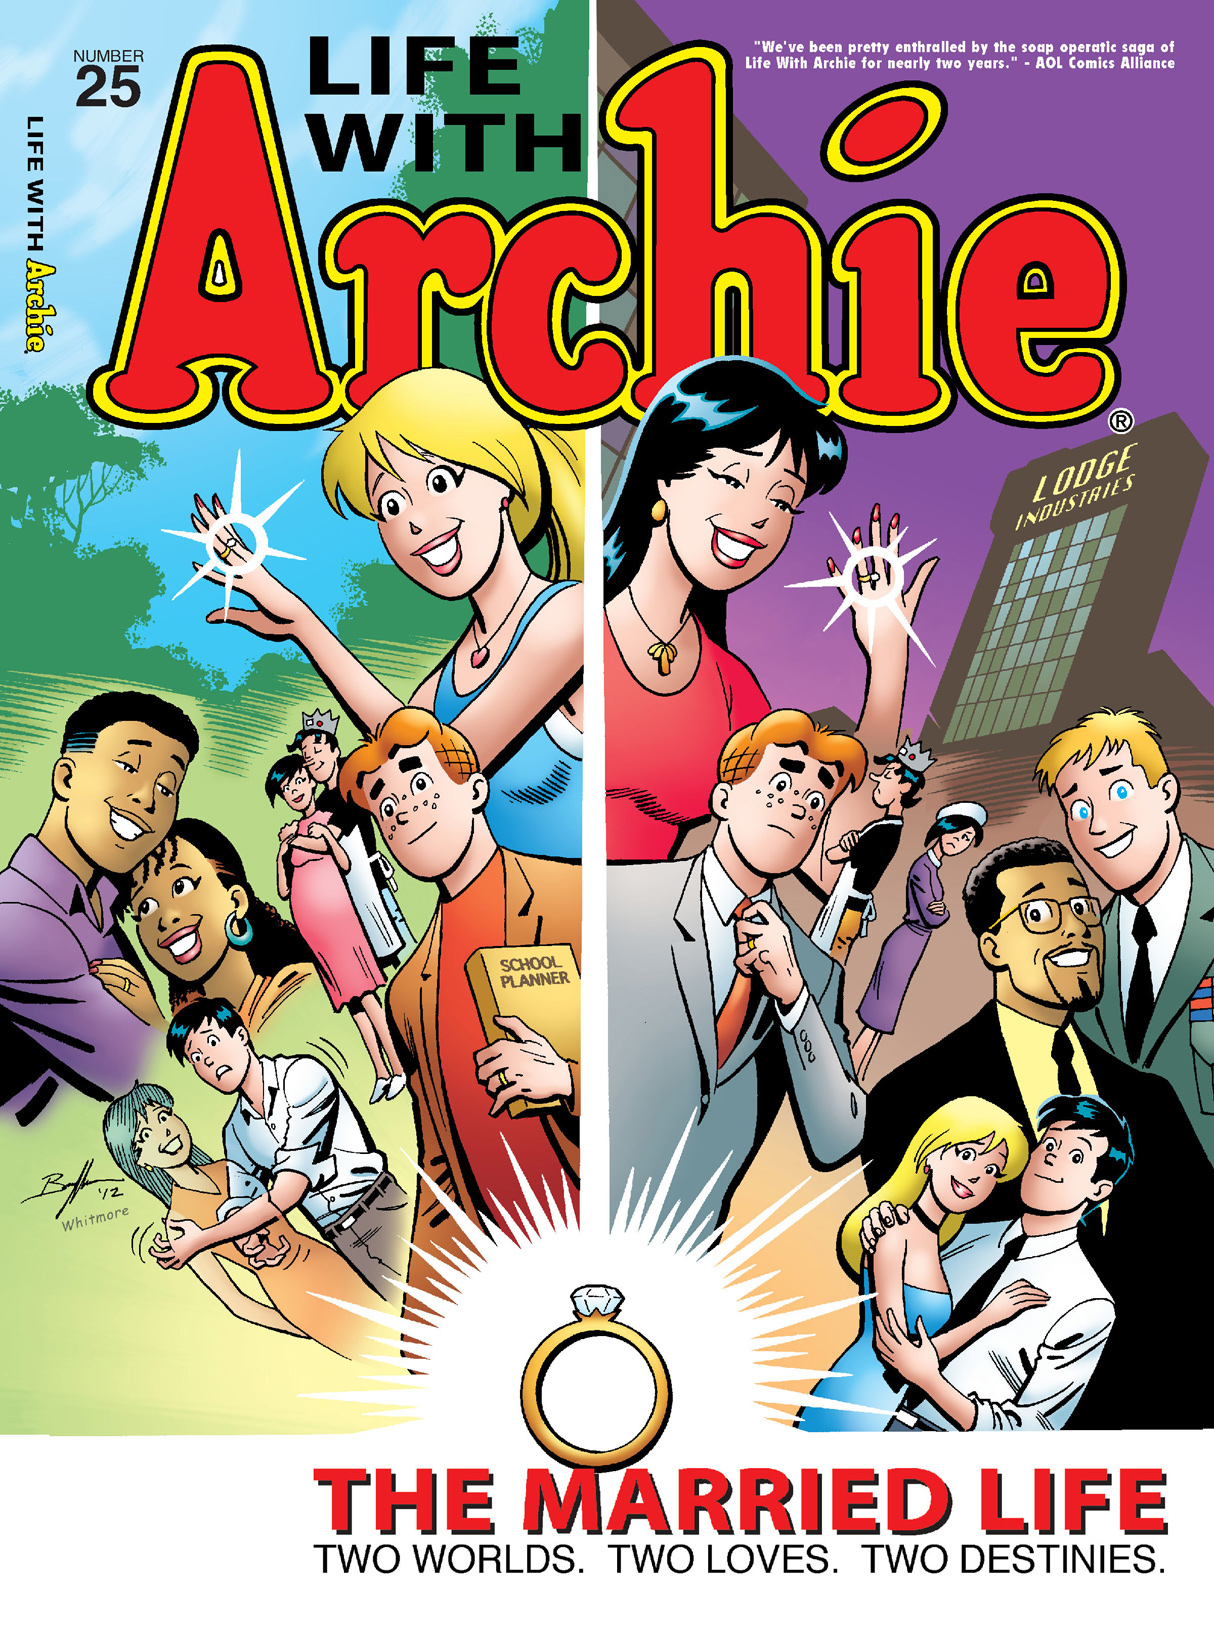 Life With Archie #25 By: Paul Kupperberg, Fernando Ruiz, Bob Smith, Jack Morelli, Glenn Whitmore, Pat Kennedy, Tim Kennedy, Jim Amash